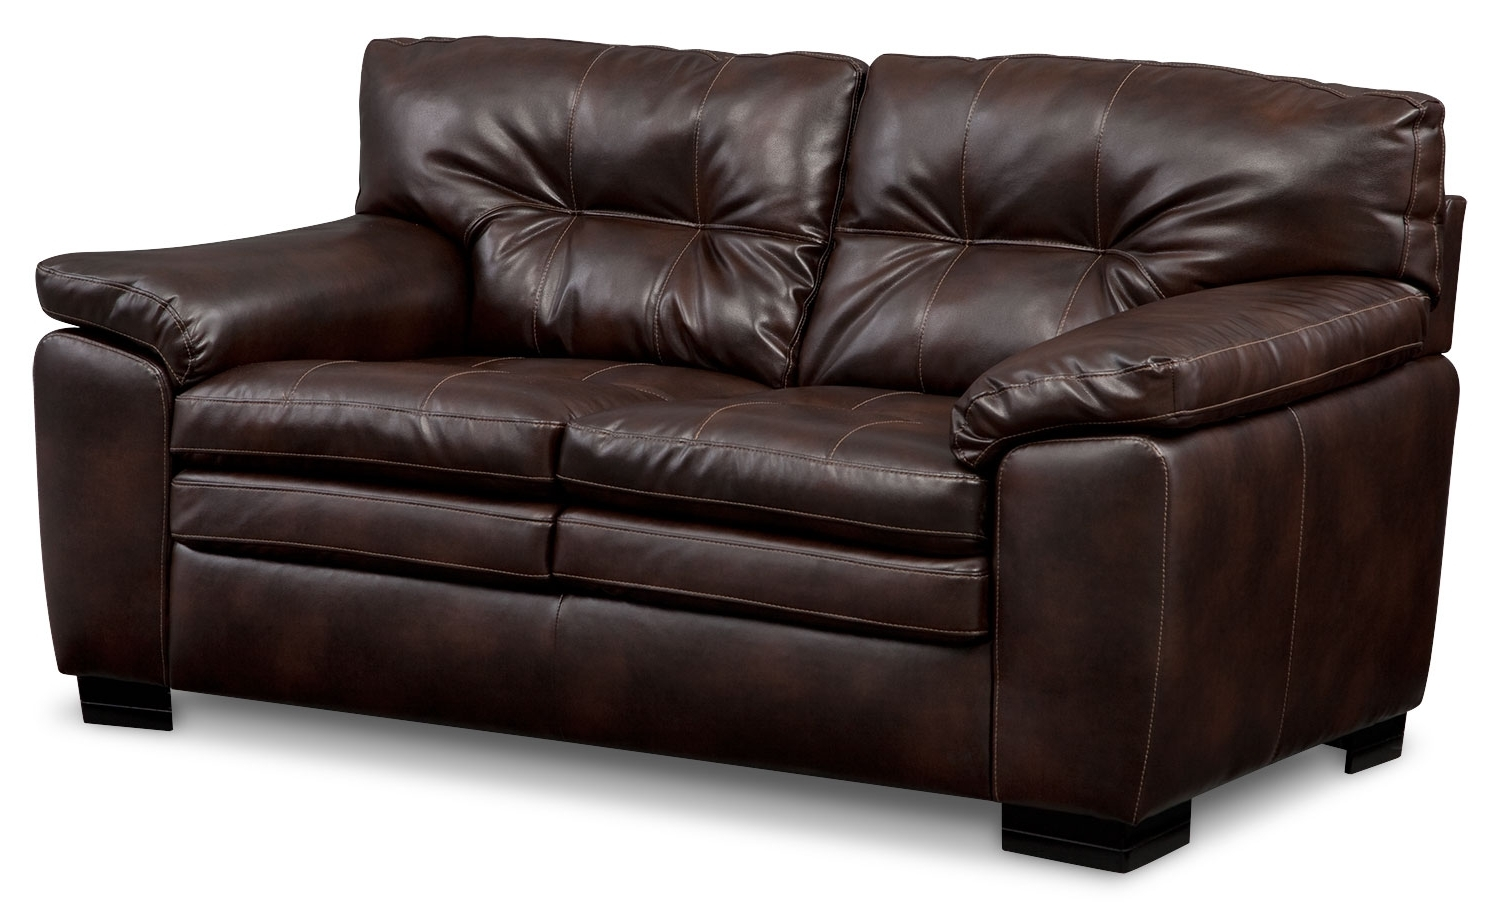 Sectional Sofas Under 500 With Well Known Sofa : Beige Sofa Set Beige Fabric Classic Living Room Sofa (View 8 of 20)